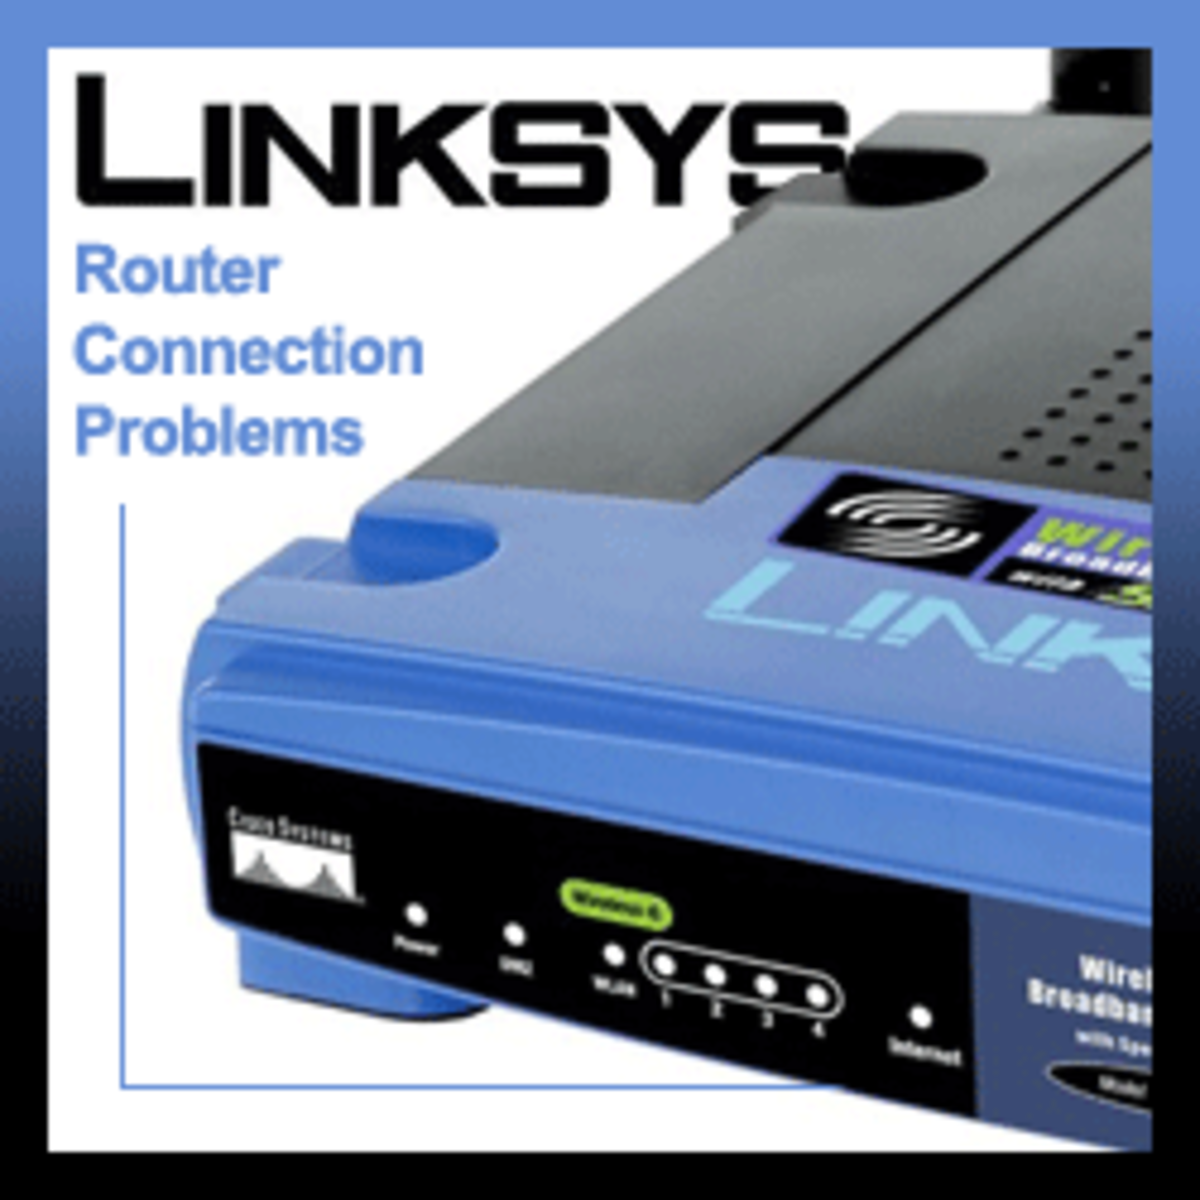 How to Fix Linksys Router Connection Problems | TurboFuture